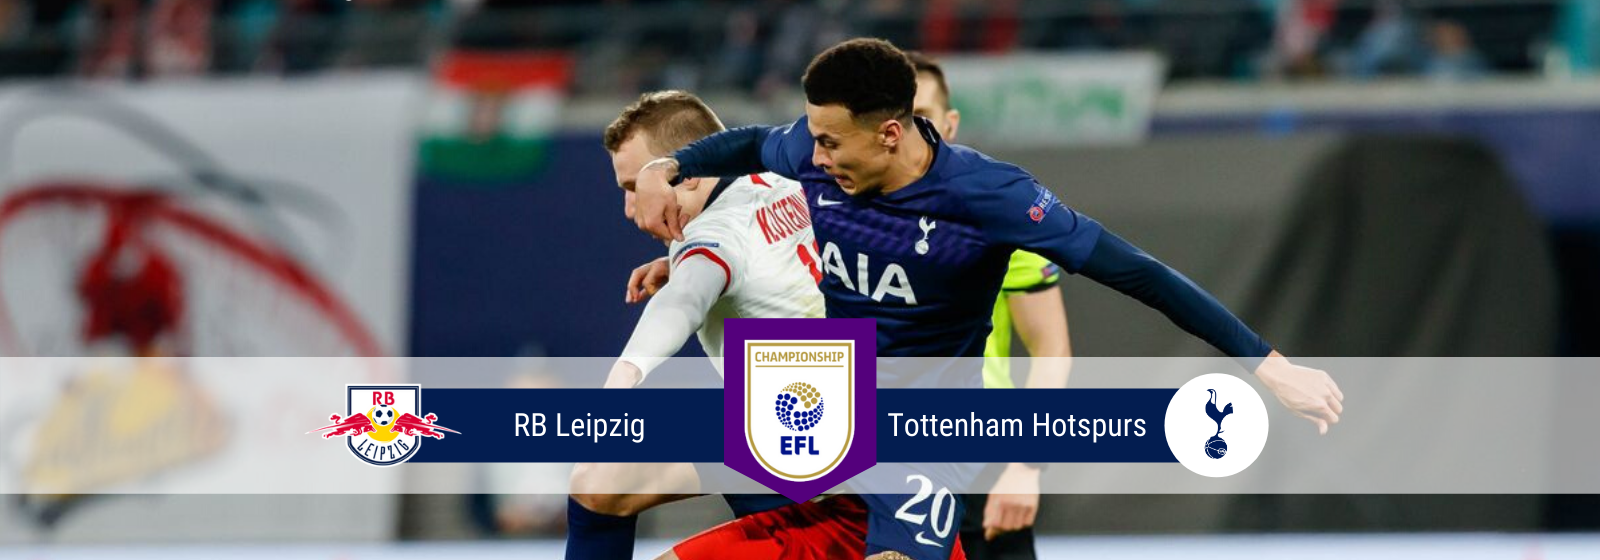 Asianconnect: RB Leipzig vs Tottenham Hotspurs Odds for March 10, 2020